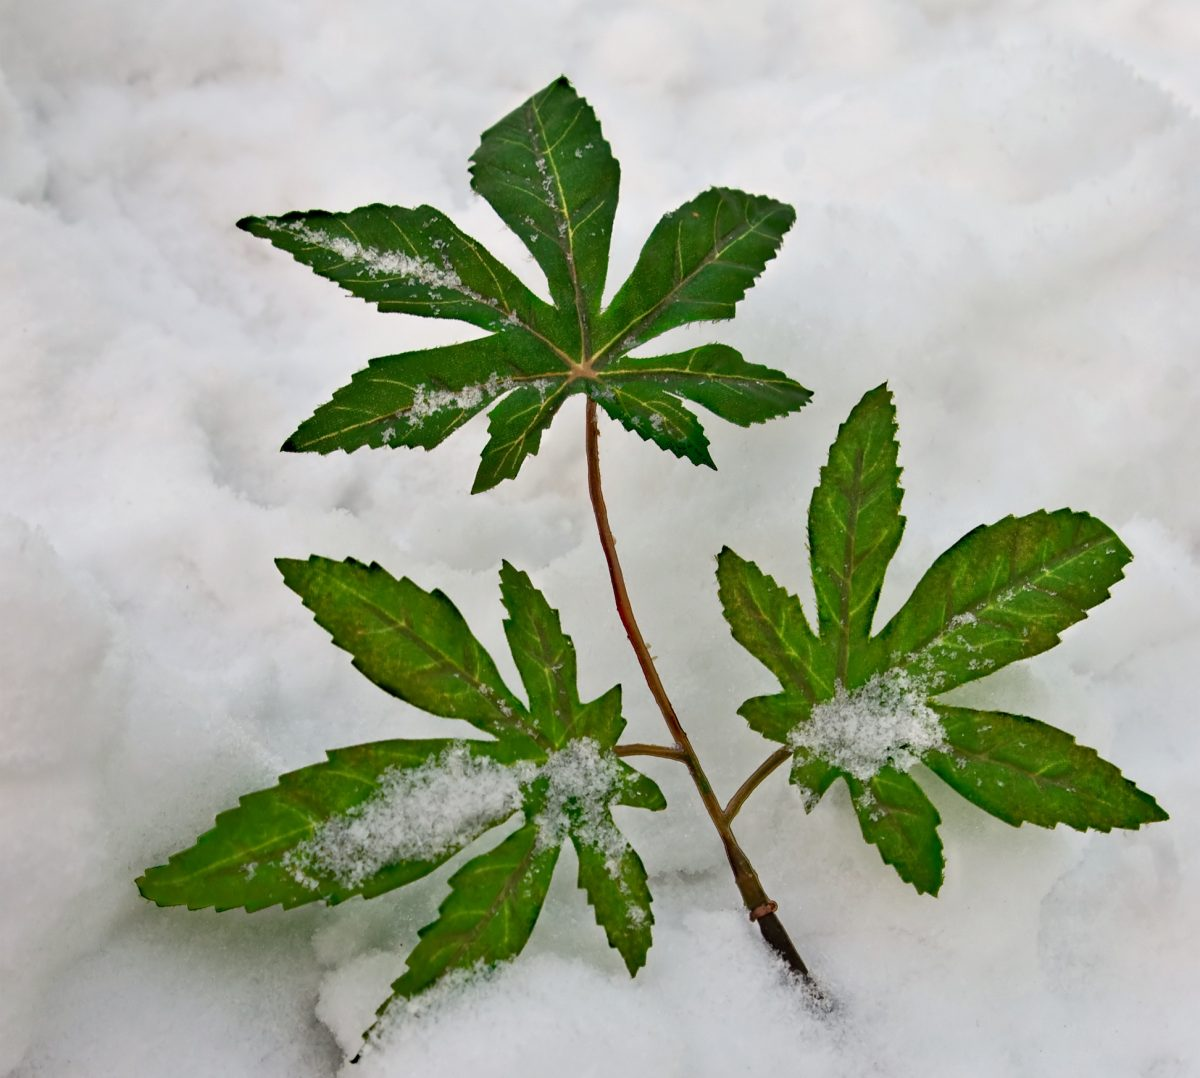 cannabis in winter snow